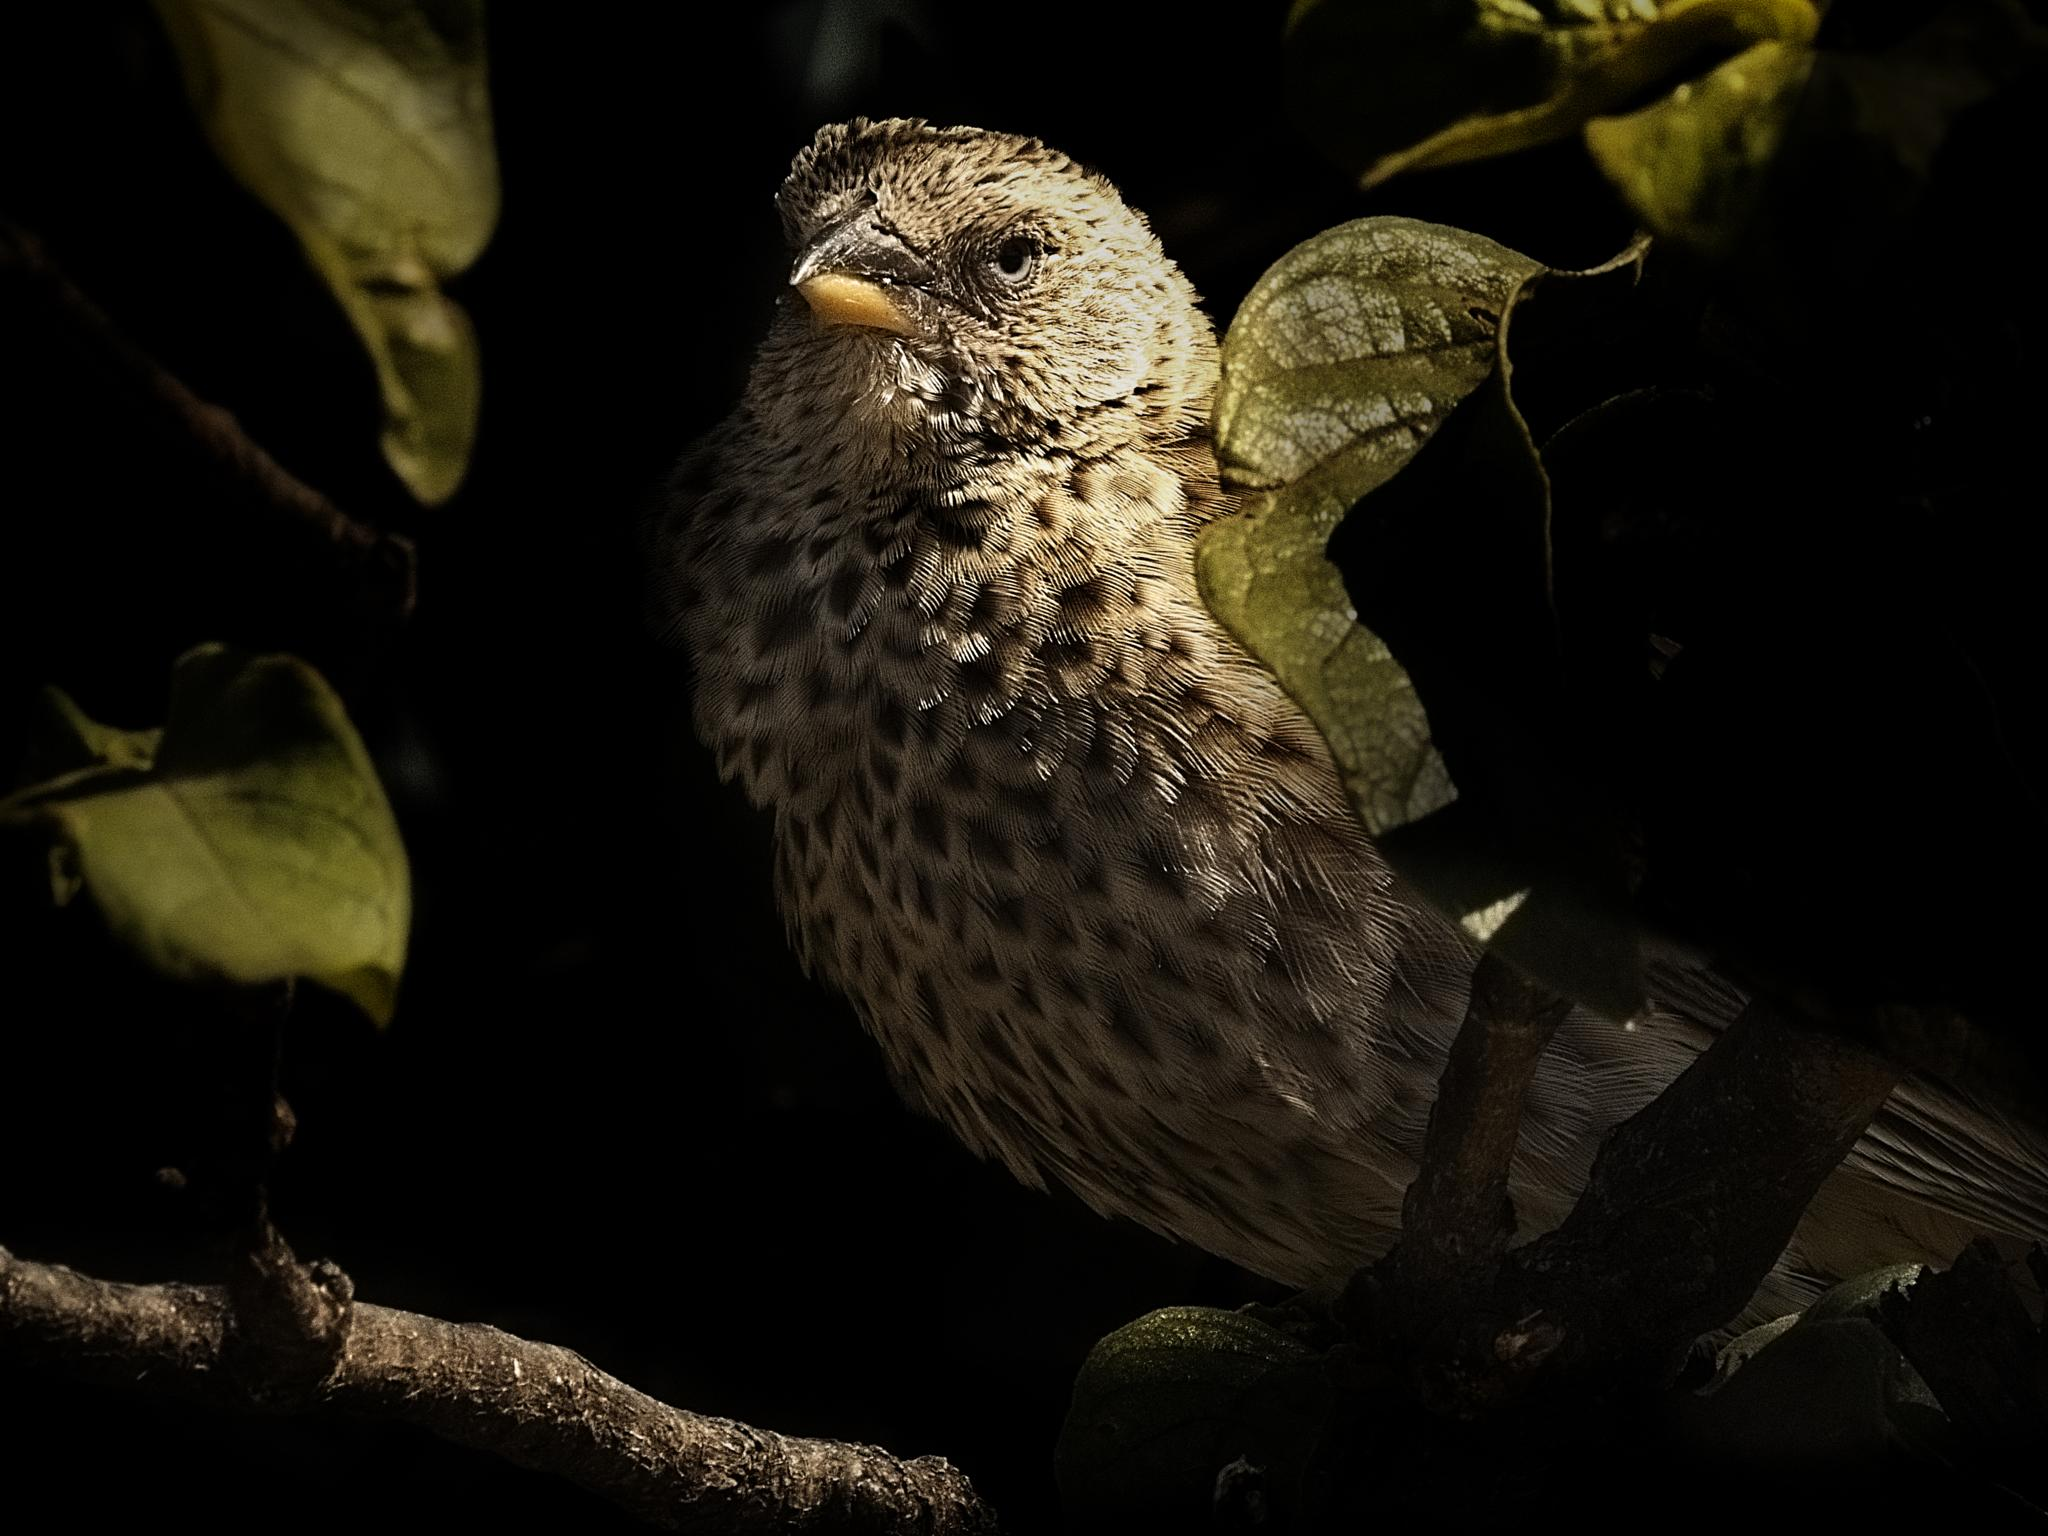 Rufous Tailed Weaver by David Owen